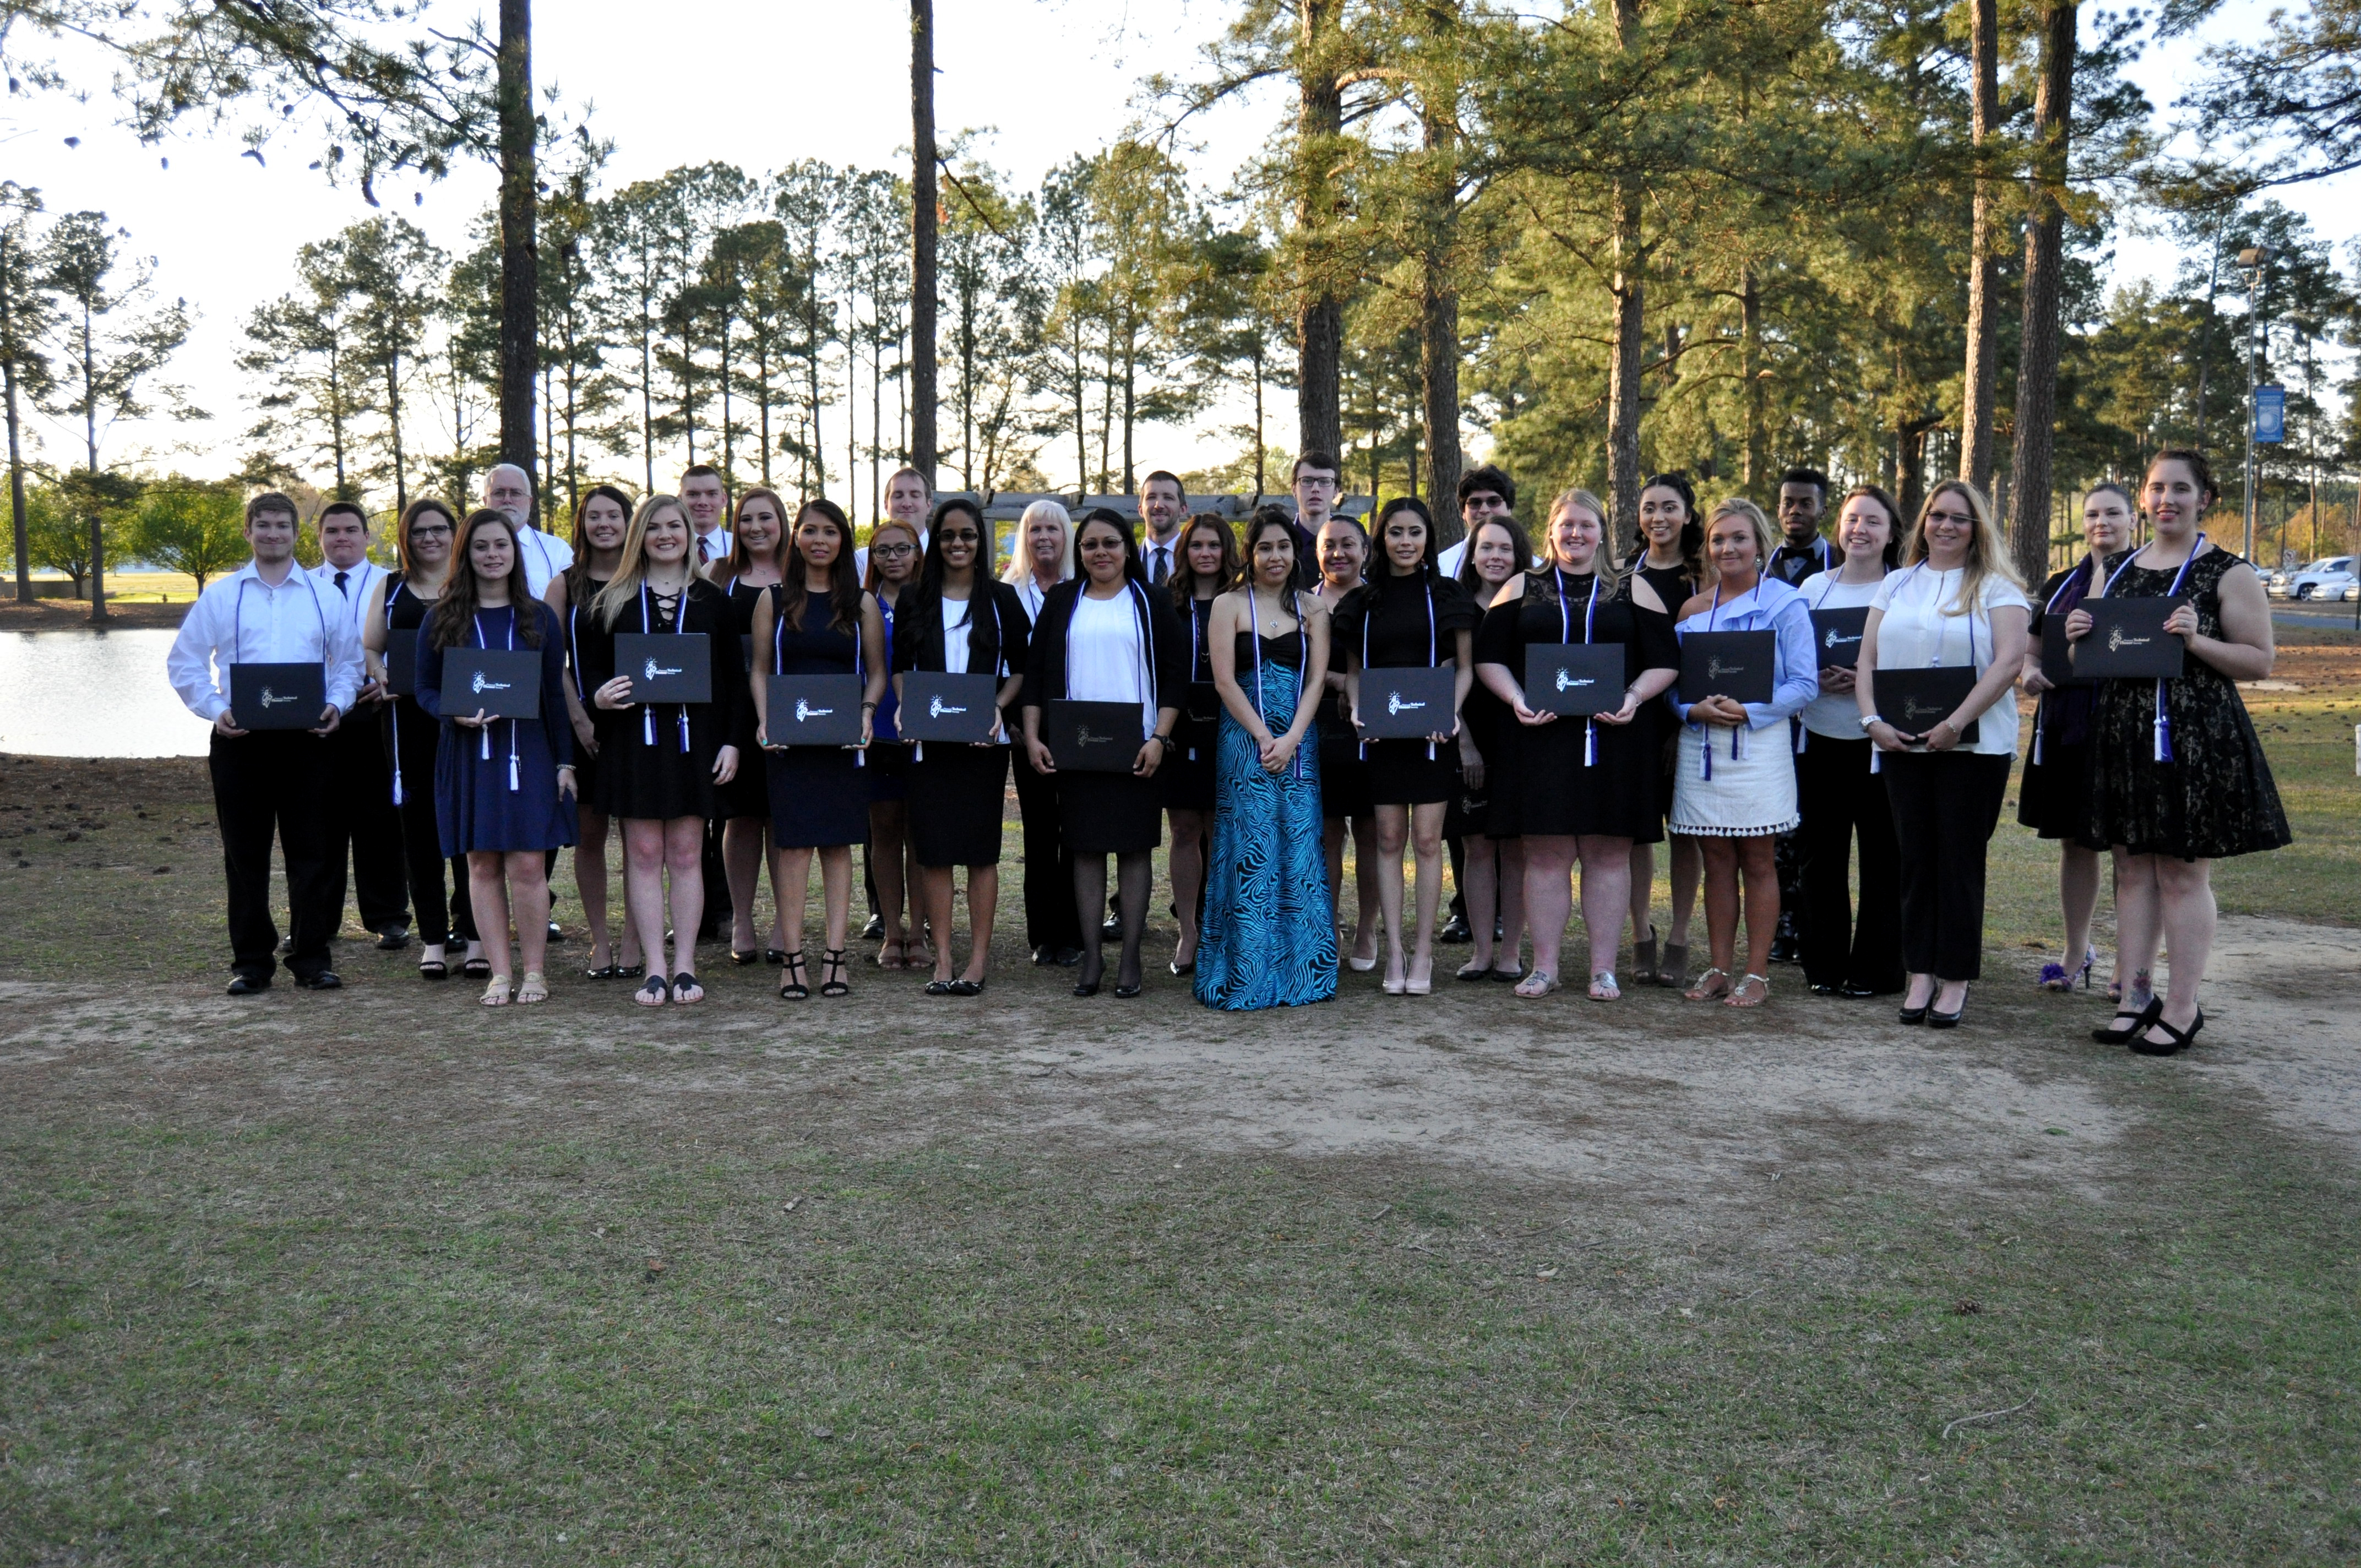 46 students were inducted into the National Technical Honor Society at JCC for 2017-18.